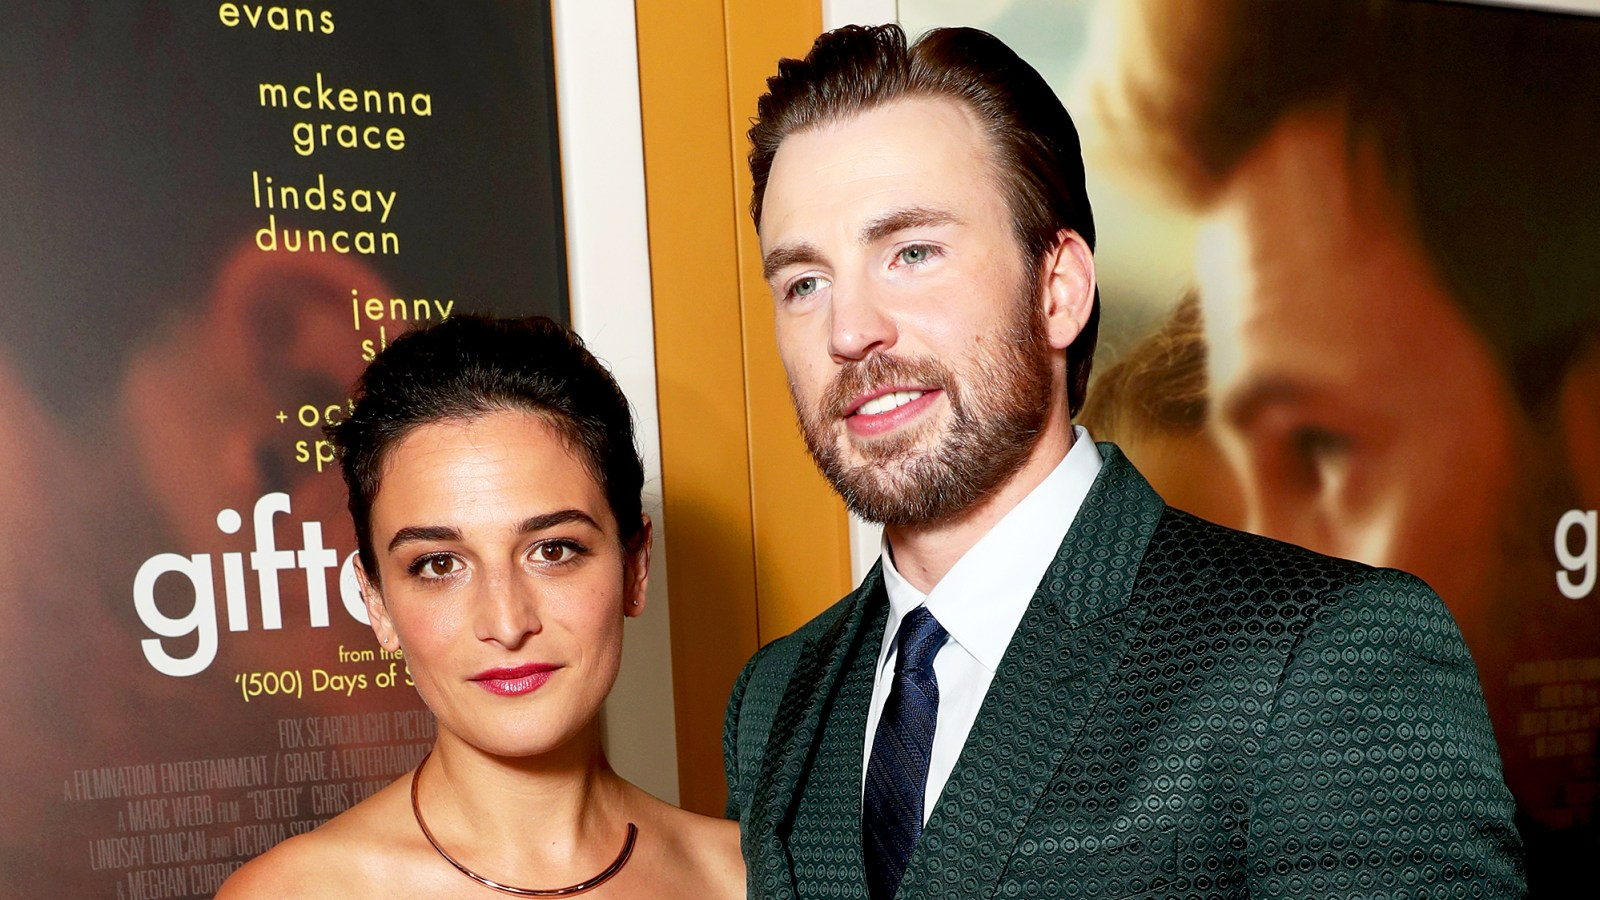 Exes Chris Evans Jenny Slate Have A Sweet Reunion Pic